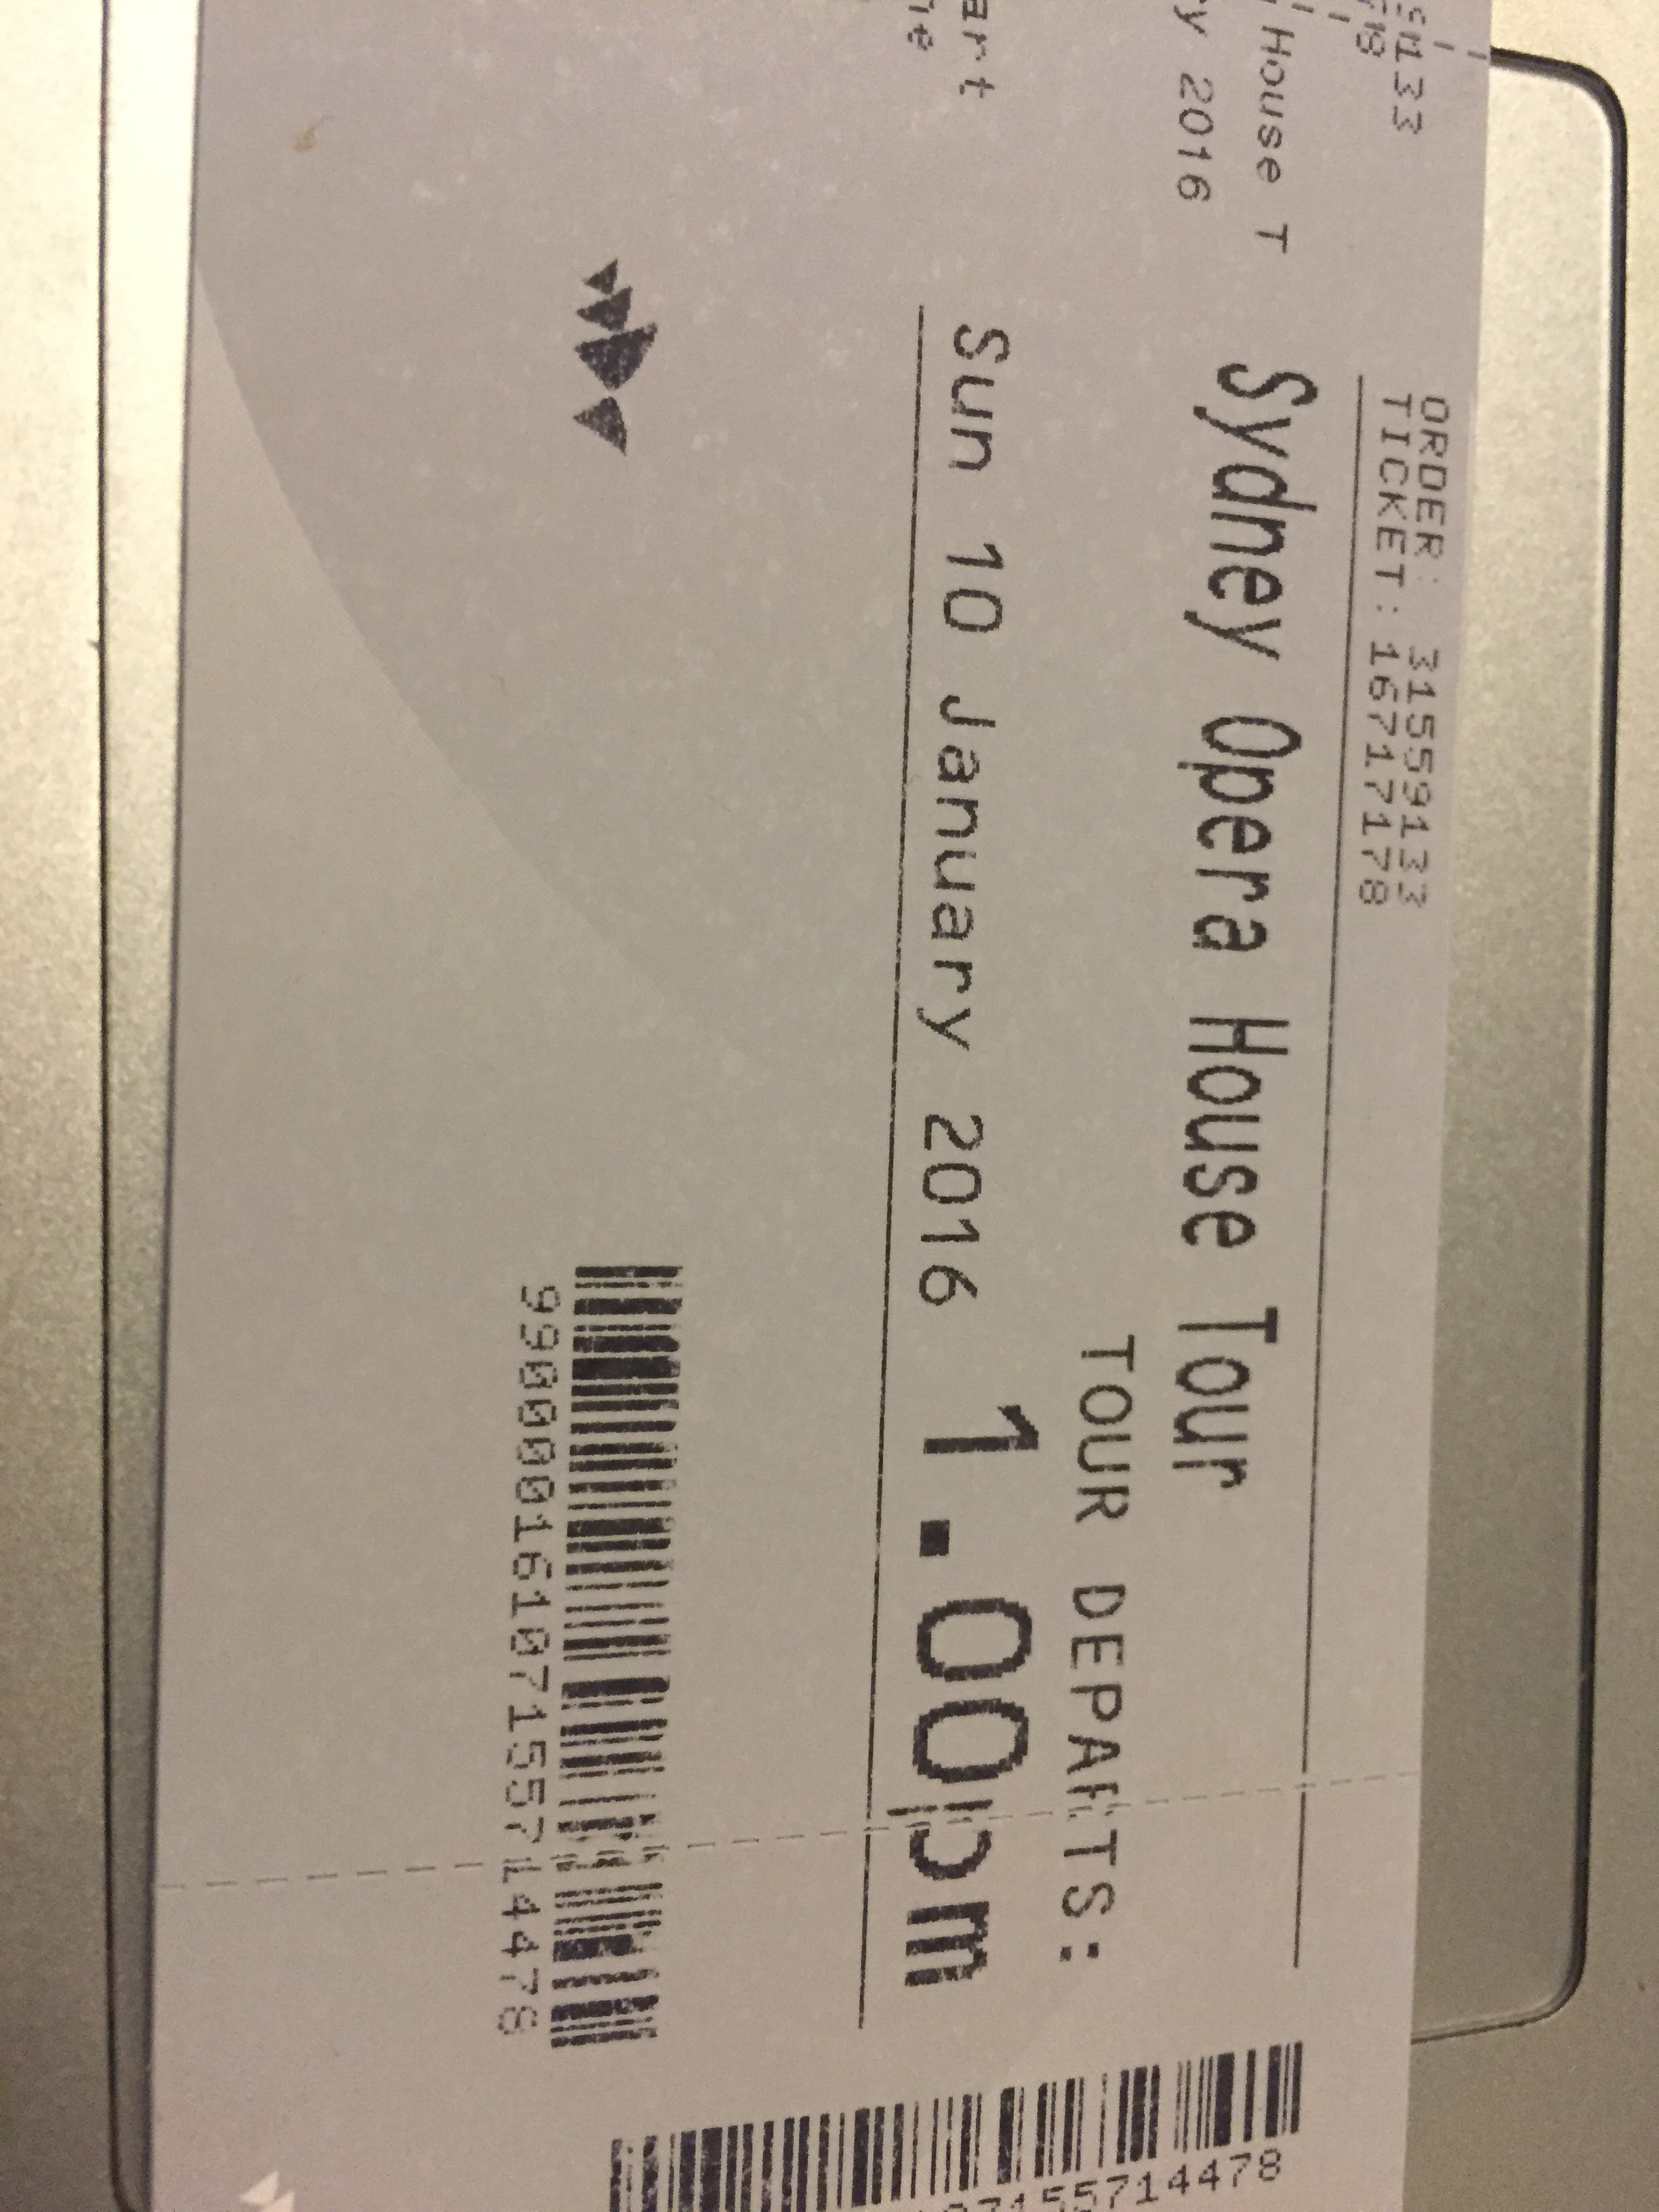 TICKETS TO THE SYDNEY OPERA HOUSE TOUR